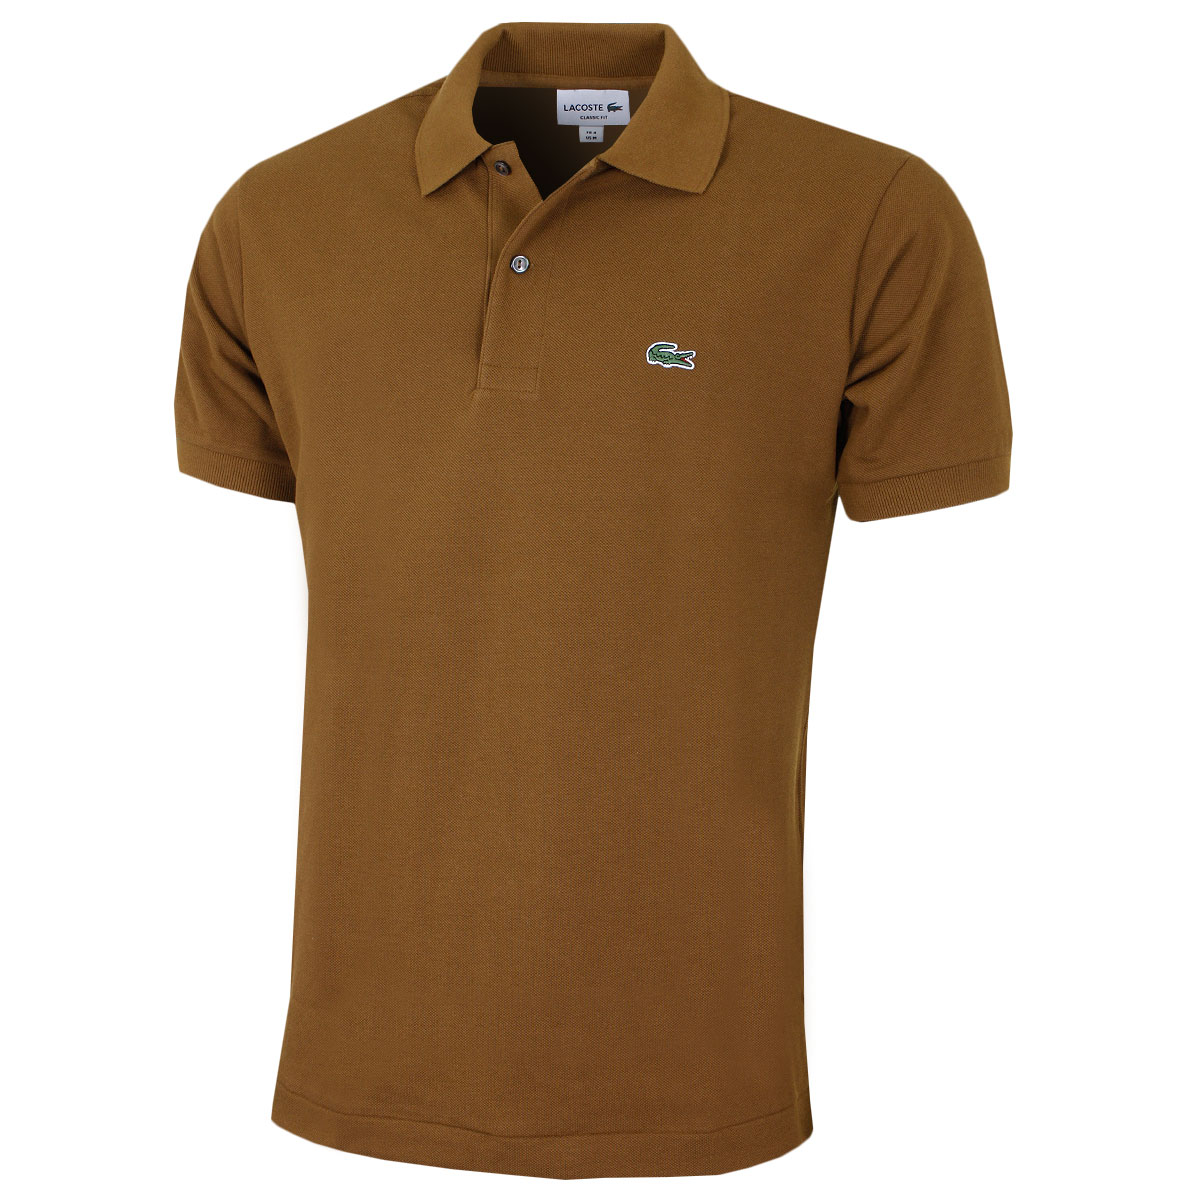 Lacoste mens classic cotton l1212 short sleeve polo shirt for Short sleeve lacoste shirt